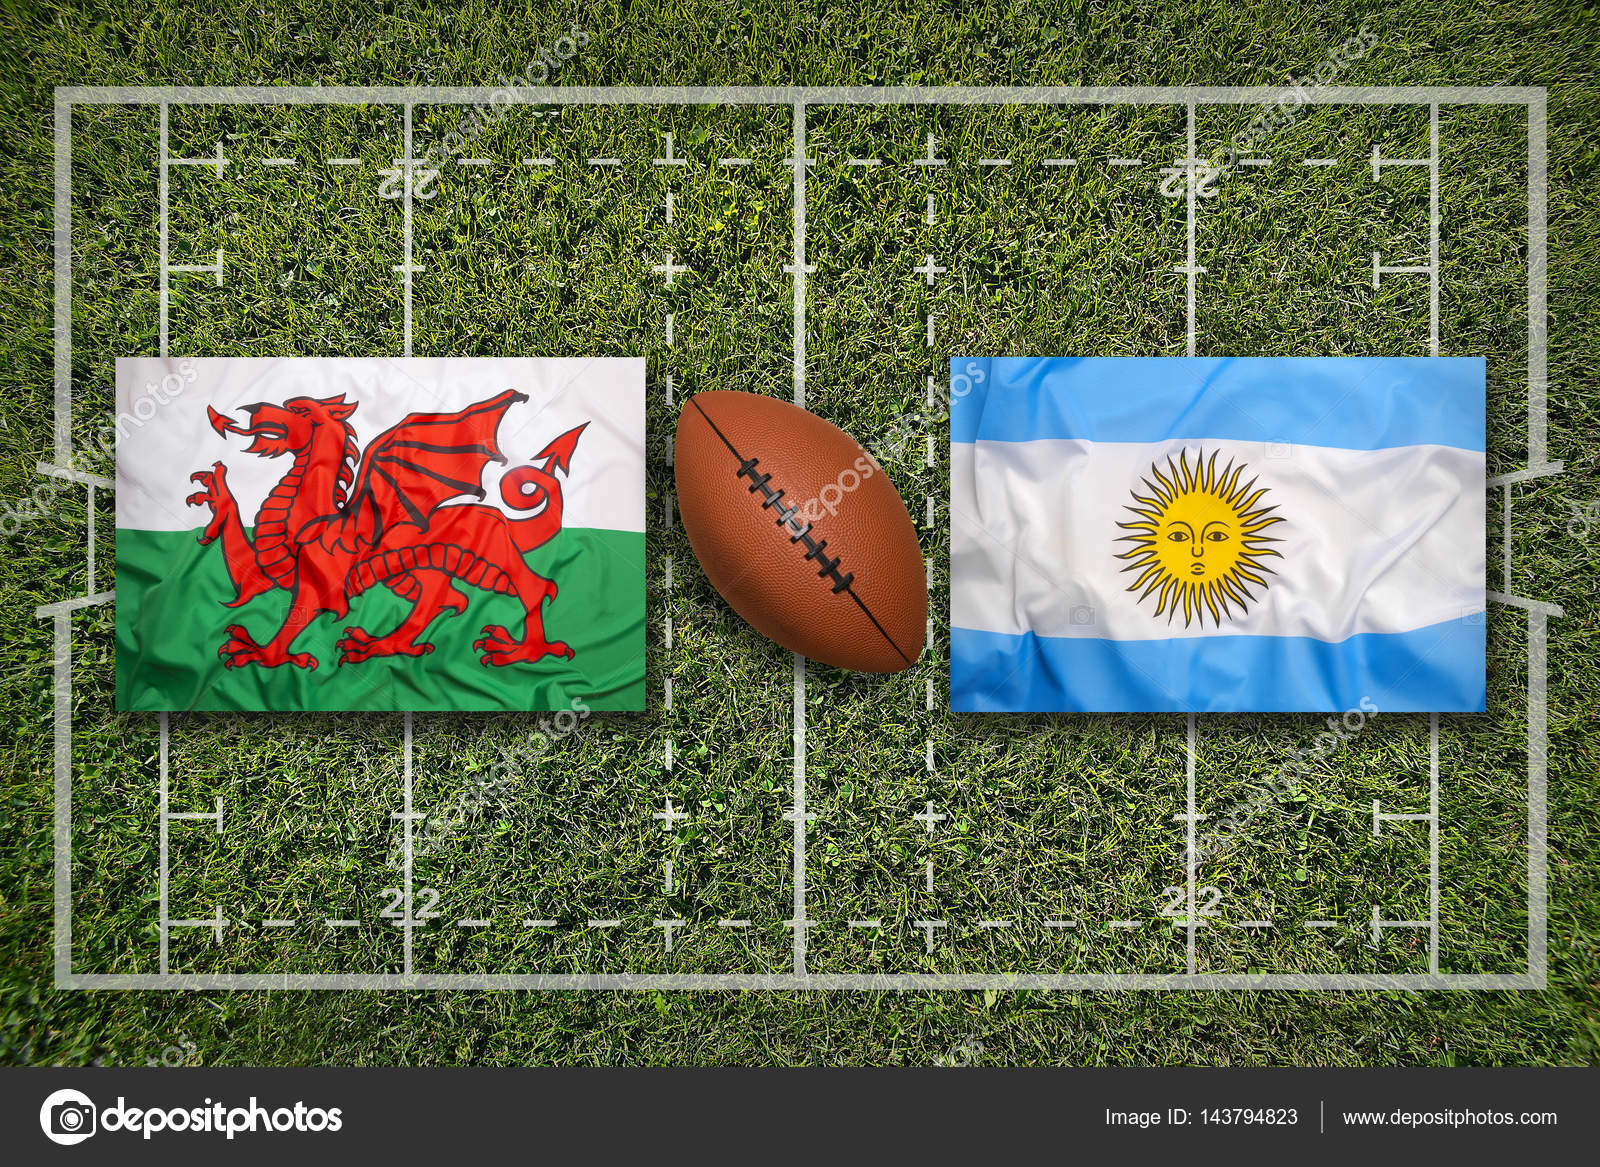 Image result for Argentina vs Wales